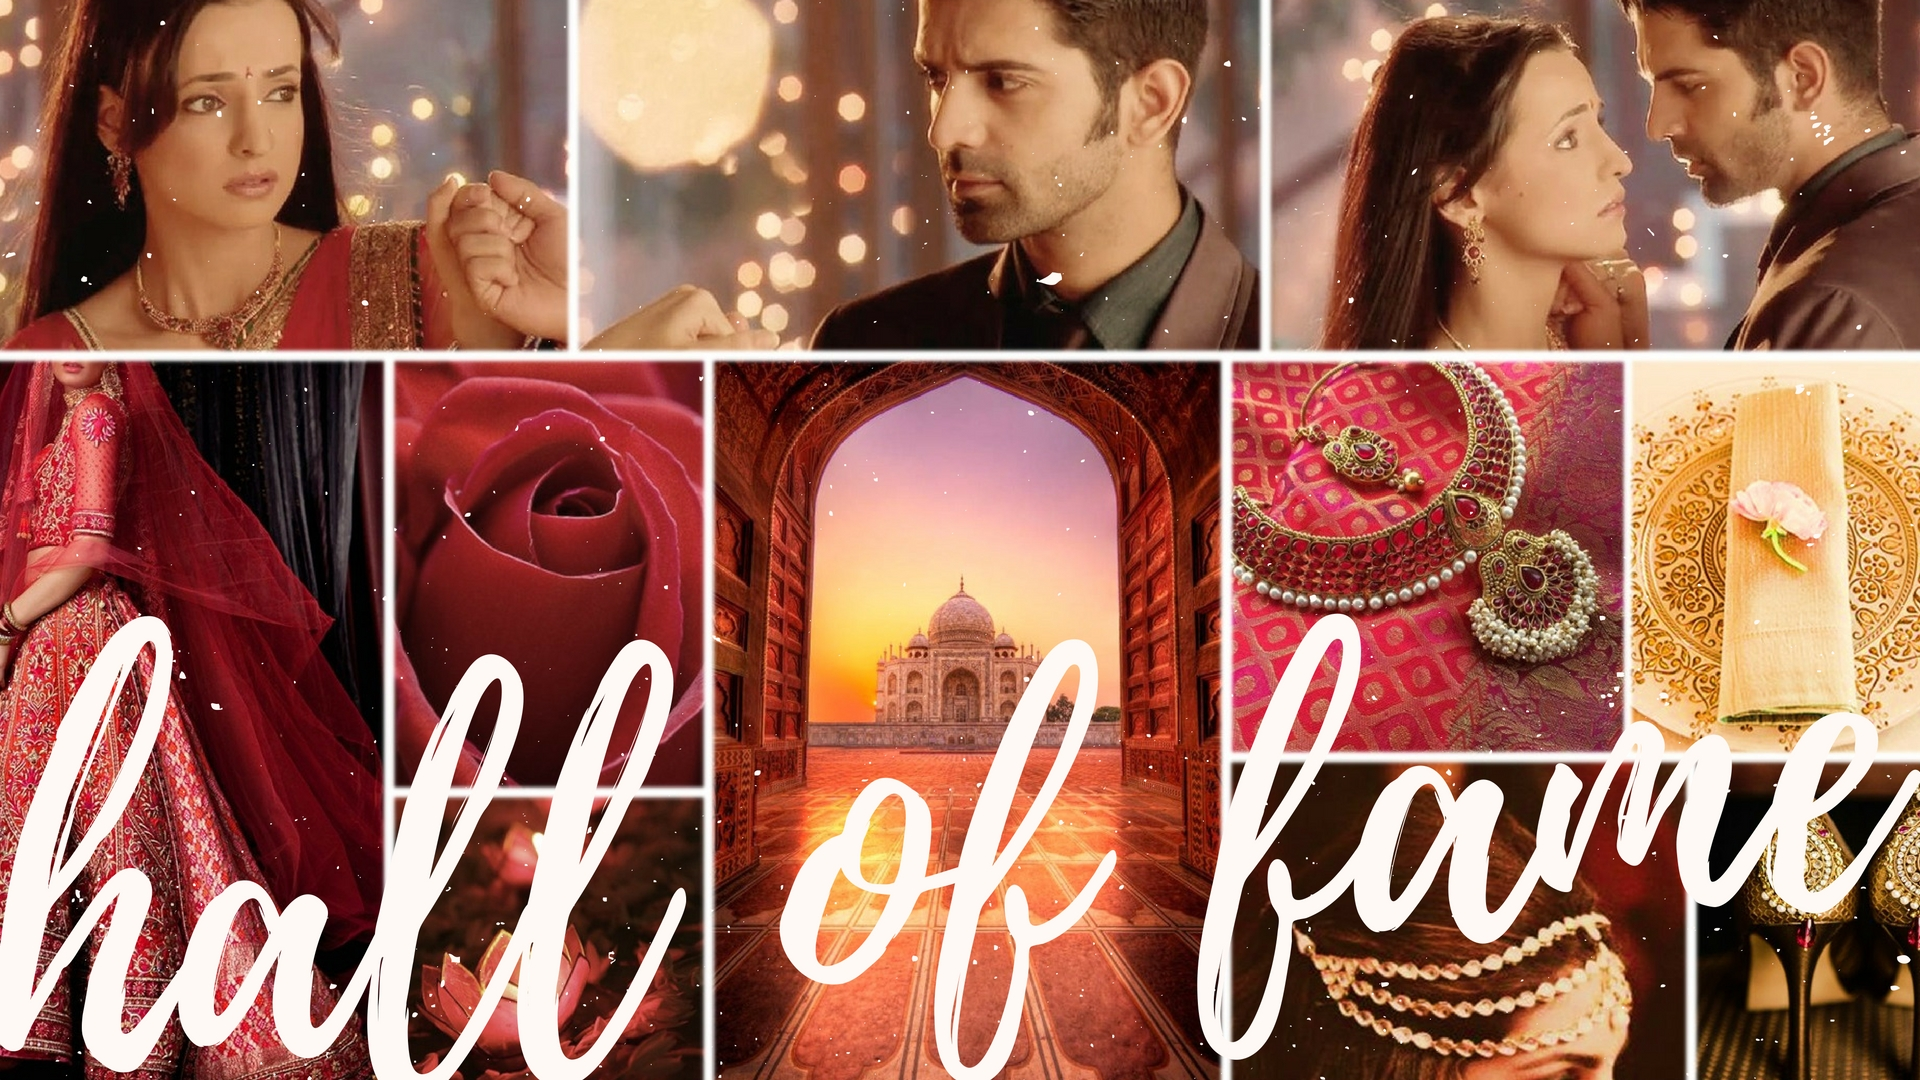 Blog – The IPKKND Ficverse